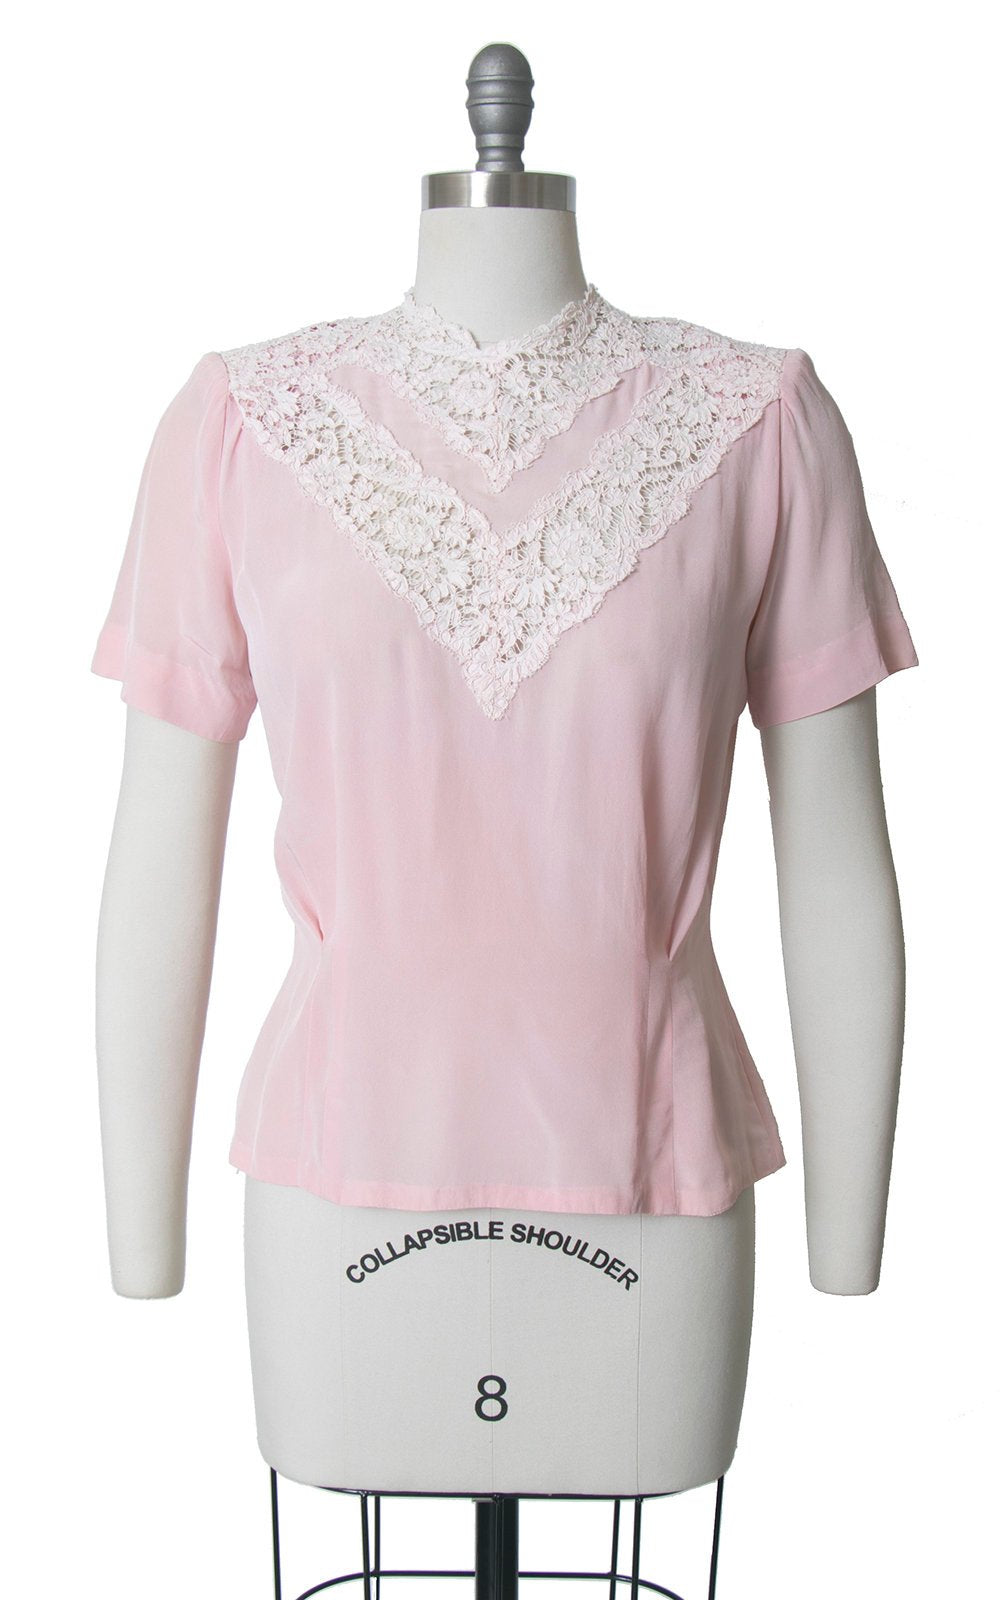 Vintage 1940s Blouse | 40s Rayon Lace Light Pink Button Back Short Sleeve Top (medium)